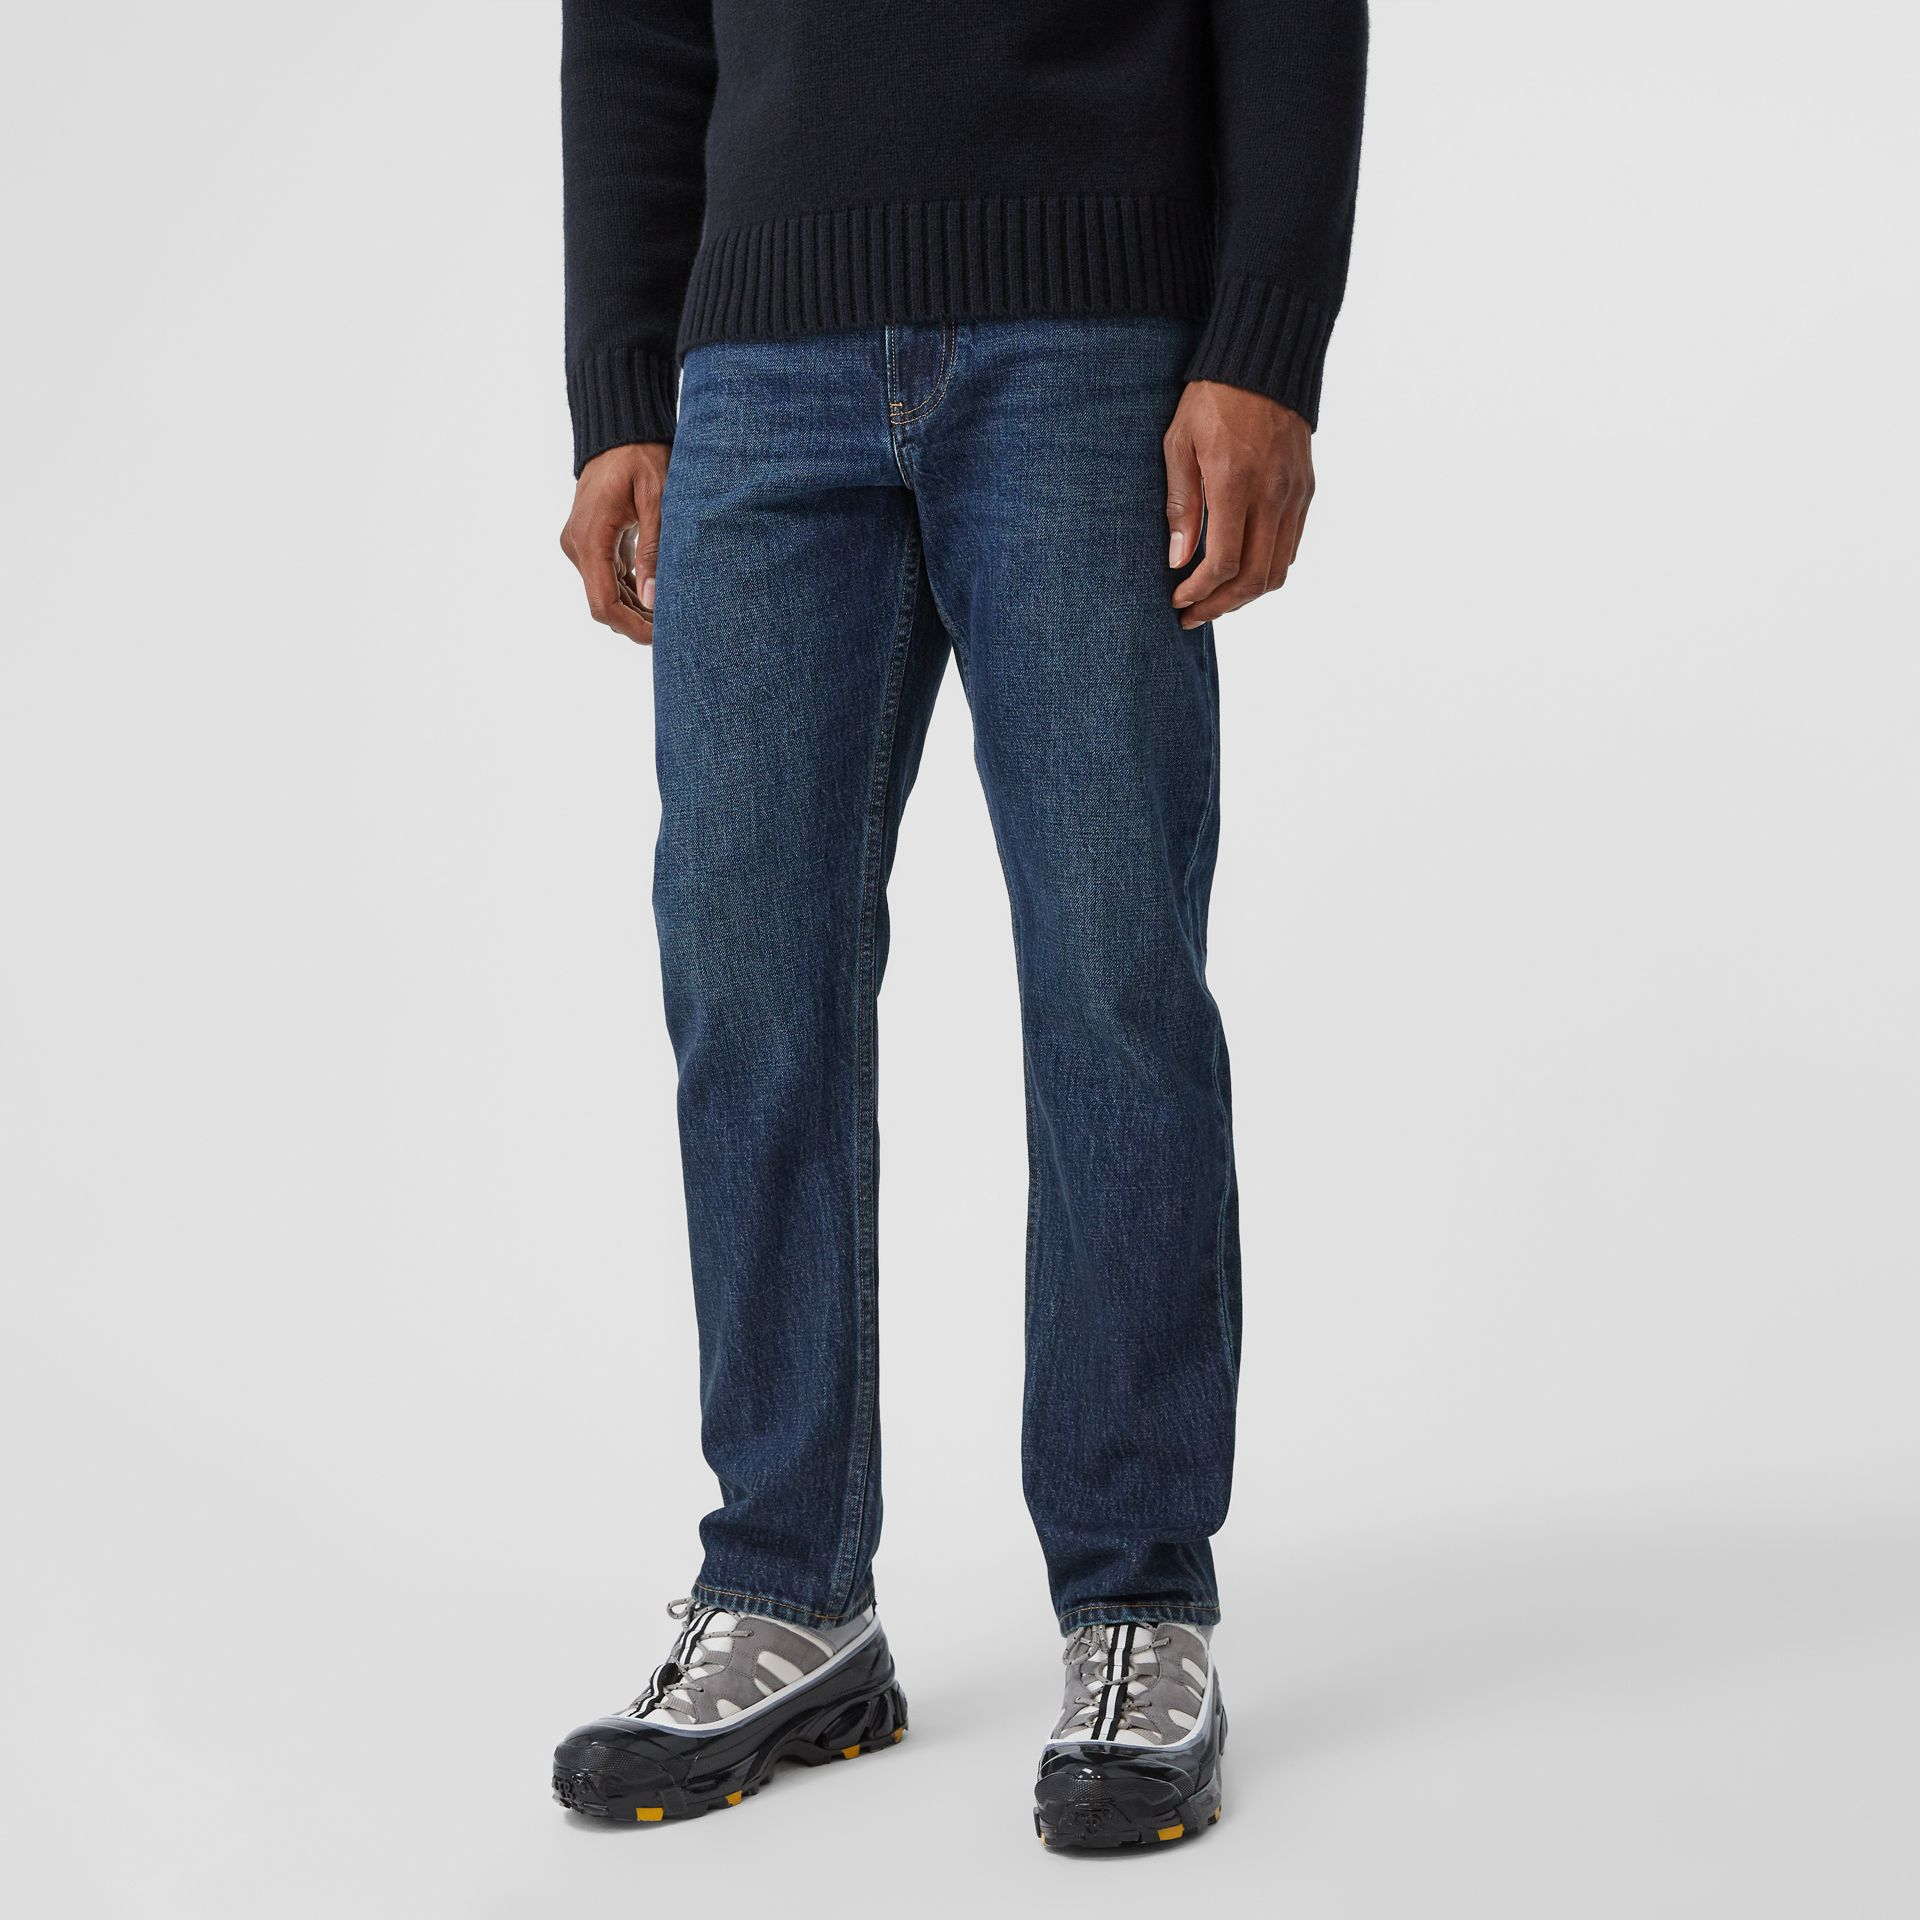 Straight Fit Washed Jeans in Dark Indigo - Men | Burberry - gallery image 4